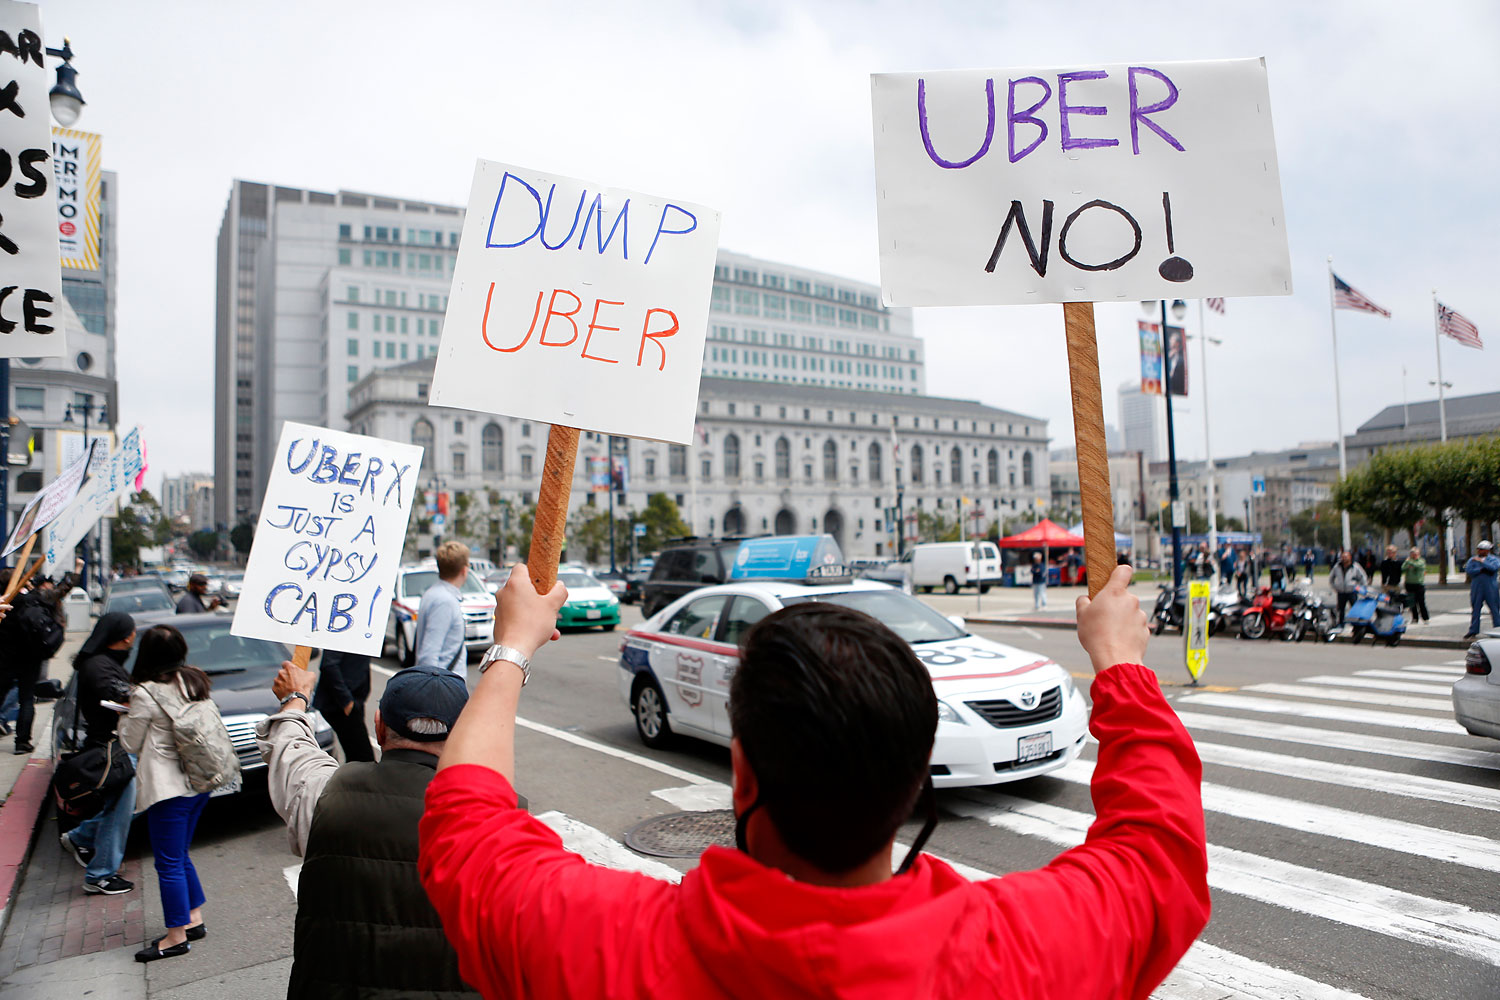 San Francisco taxi drivers protest Uber, which taxi drivers say is operating illegally in San Francisco, July 30, 2013.